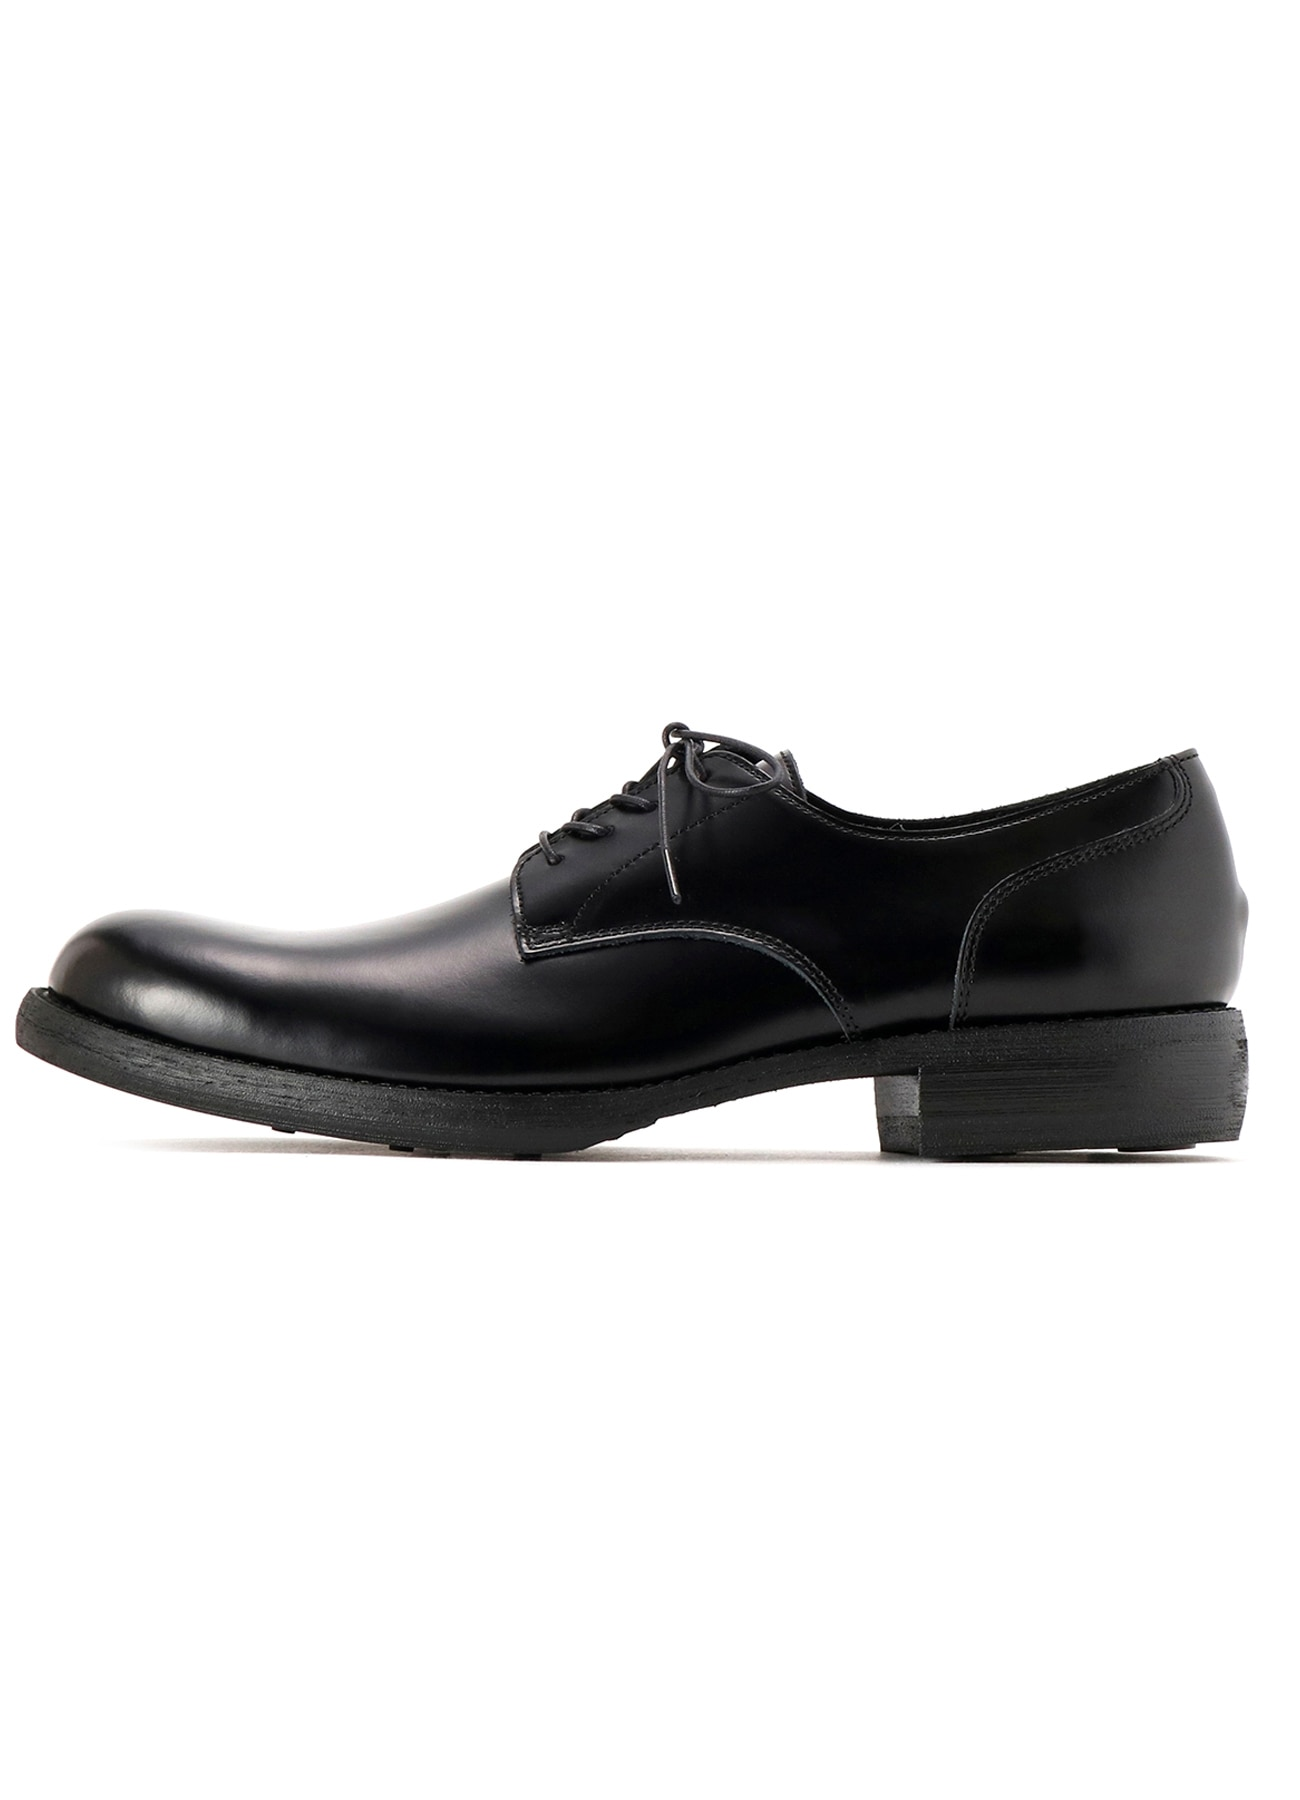 COSTUME D'HOMME Shiny glass plane toe